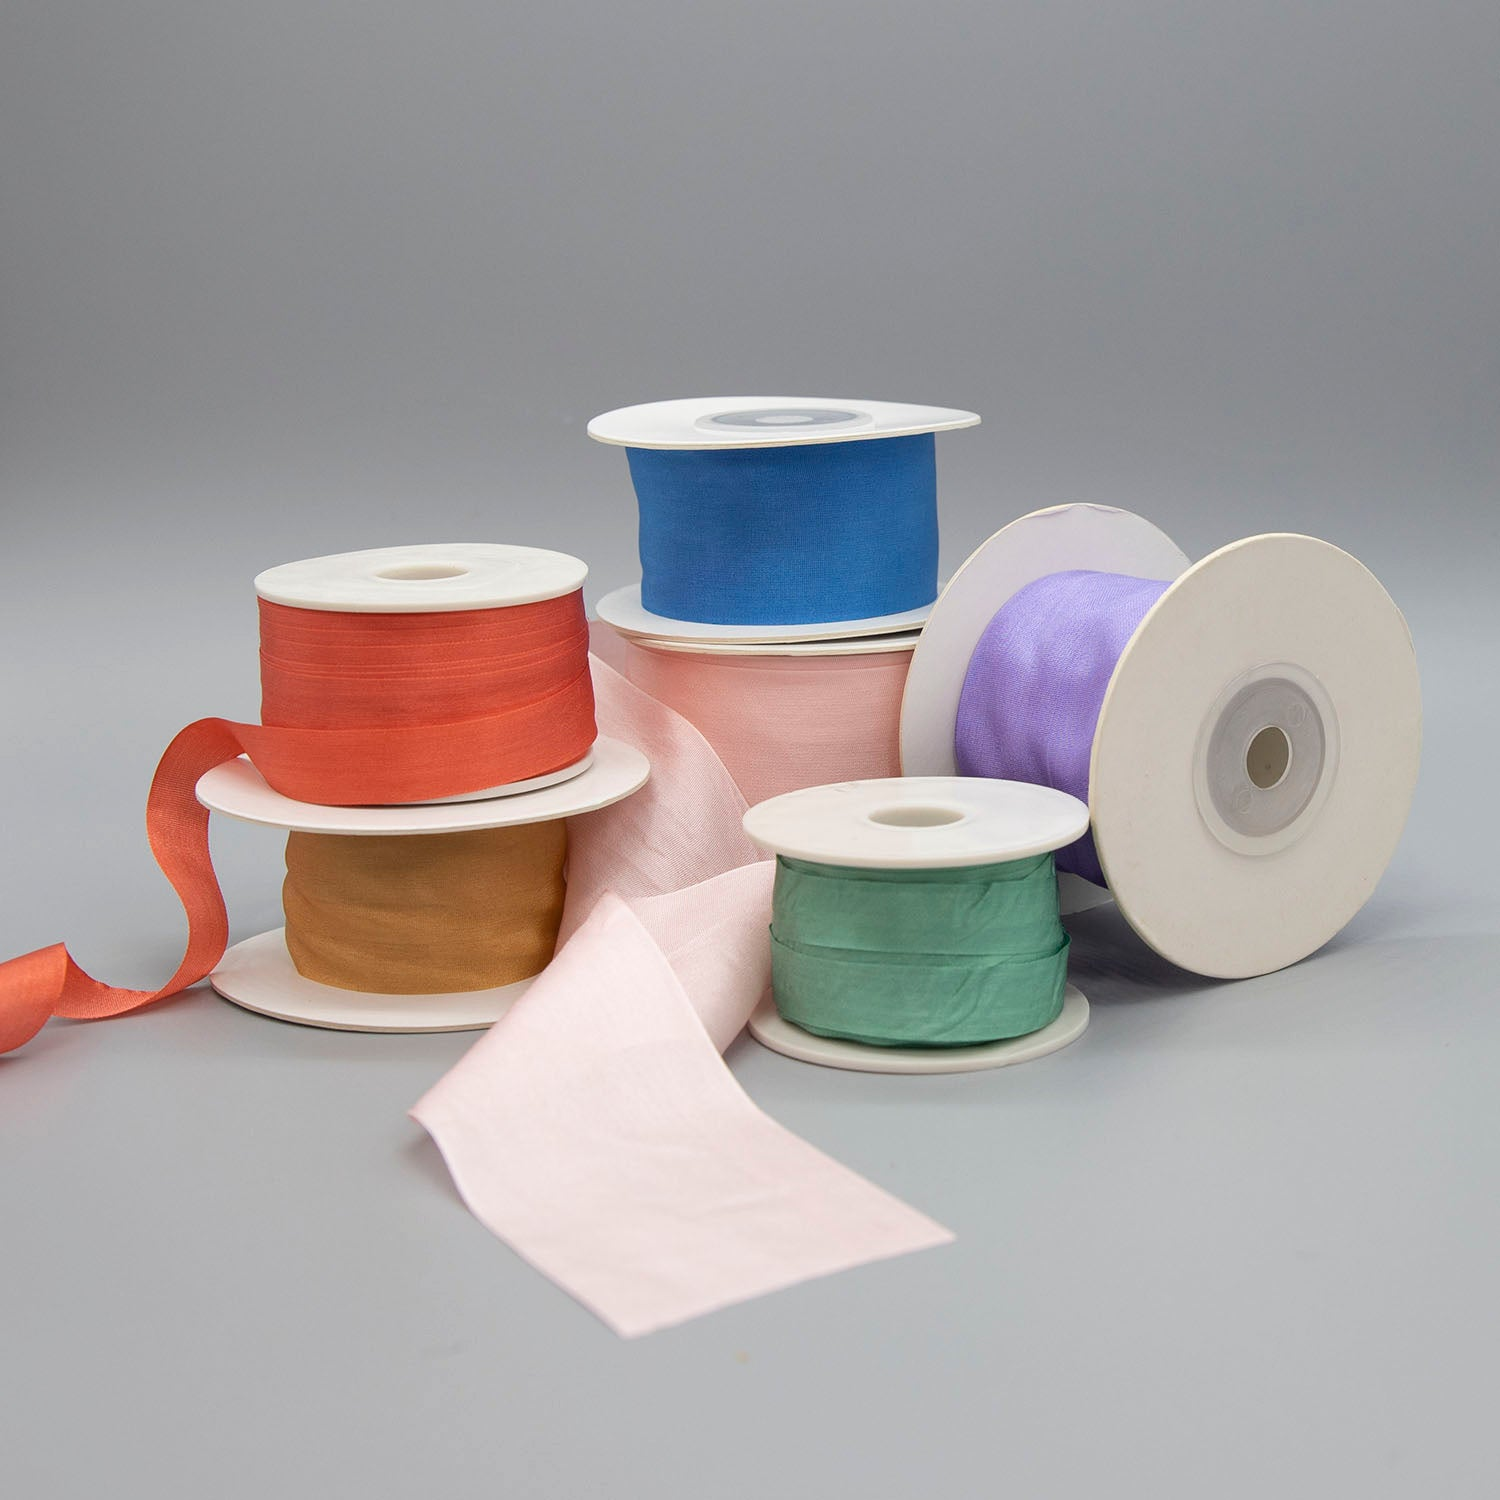 Silk Taffeta Ribbon - Sold by the yard - $2.00 yd. - $4.50 yd.